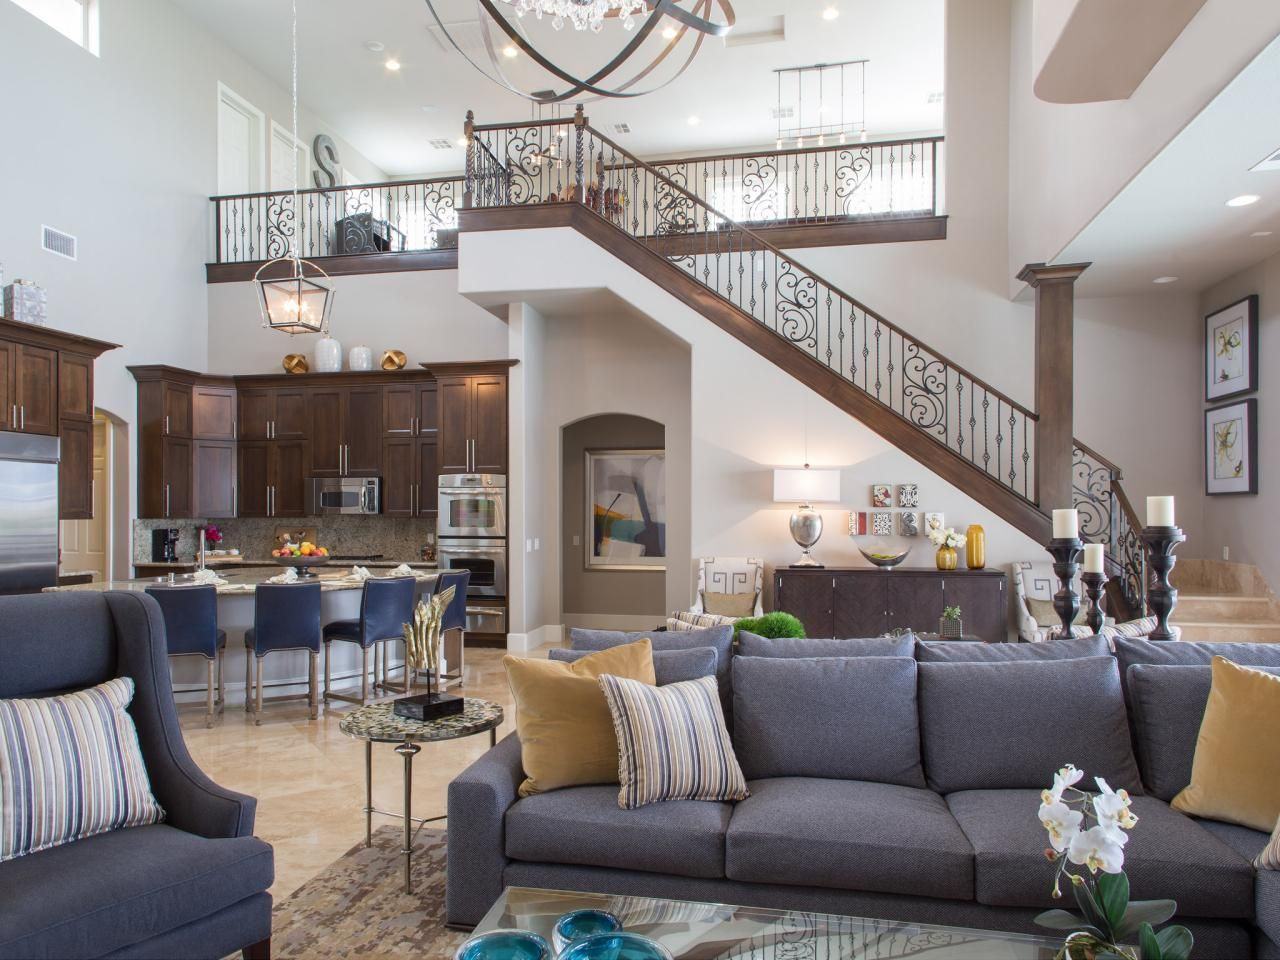 drew and jonathan scott's las vegas home features a large two